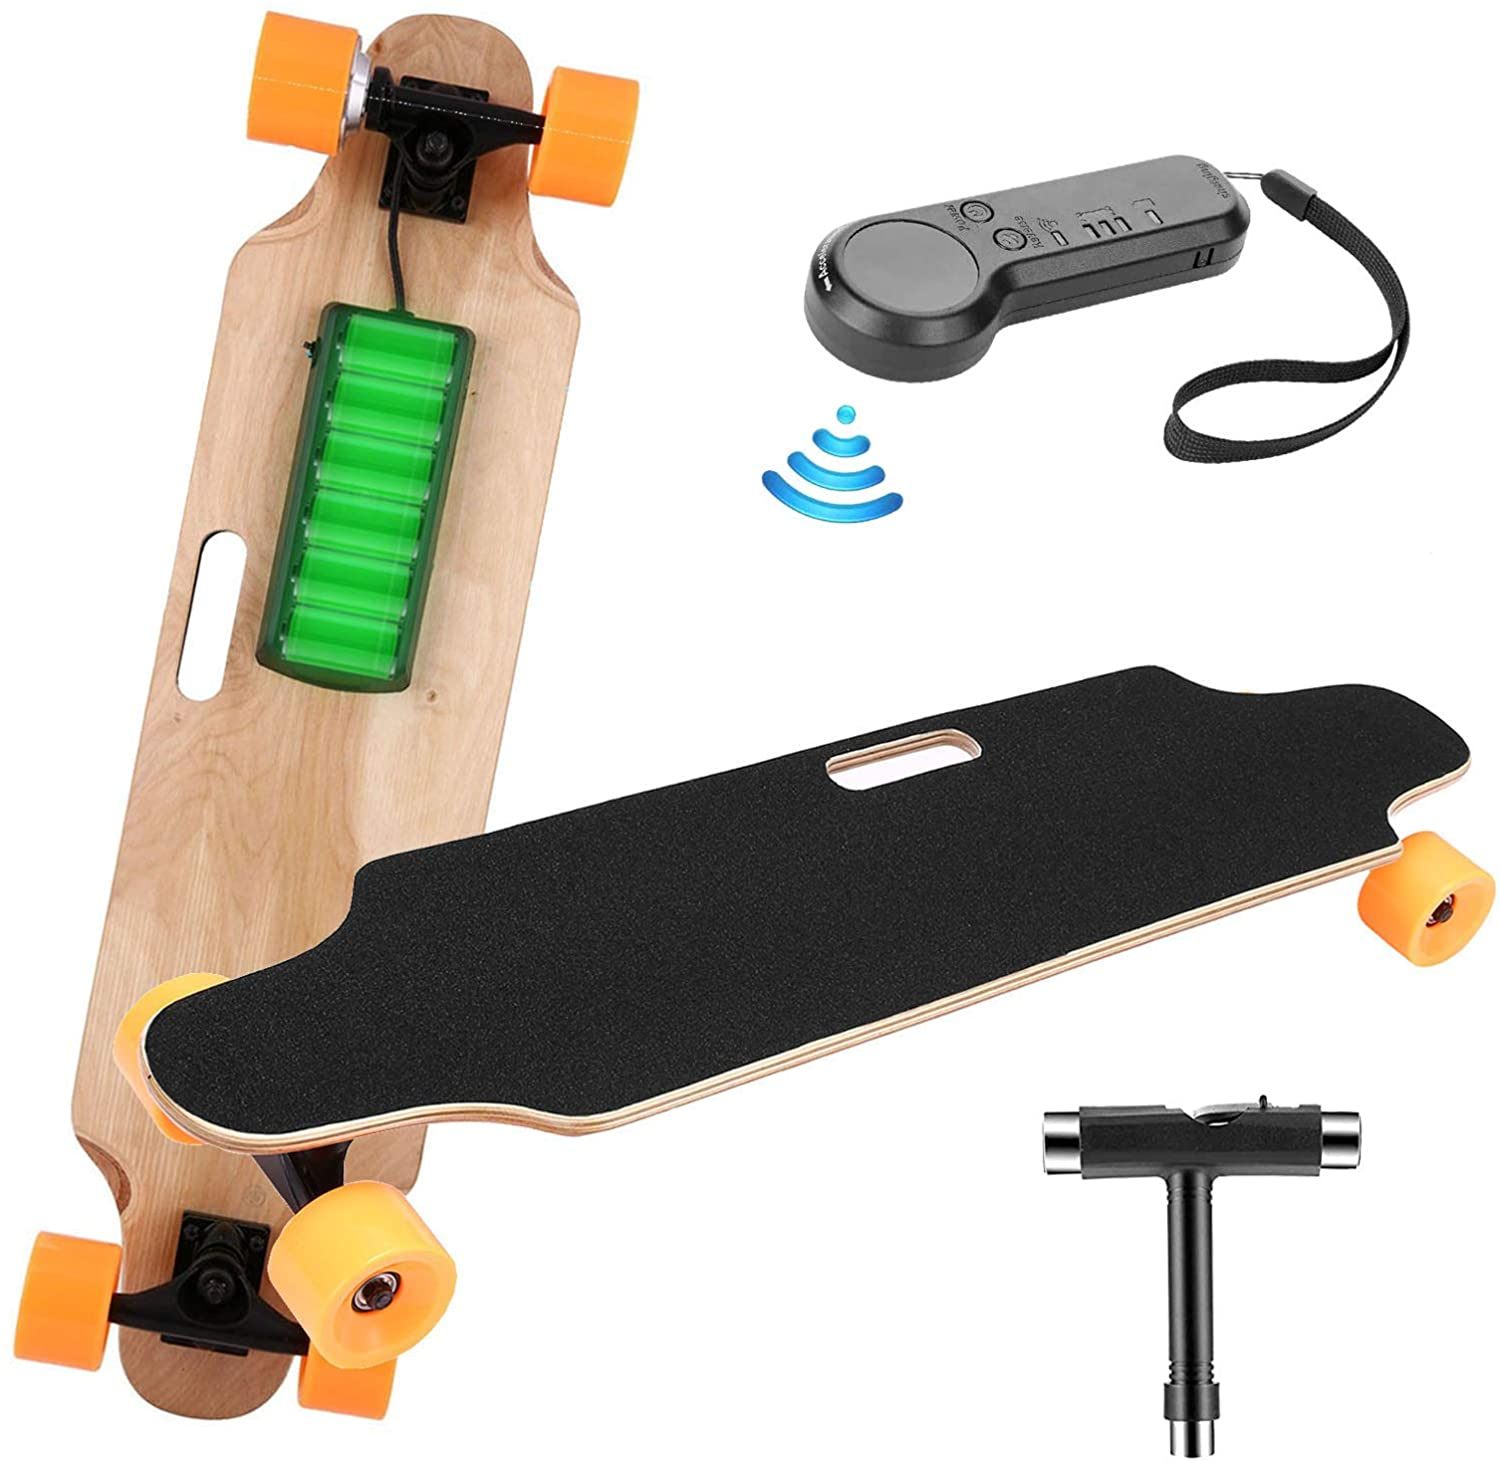 elifine Youth Electric Skateboard Electric Longboard with Wireless Remote Control 7 Layers Maple Waterproof E-Skateboard for Adult, 250W Moter, 12 MPH Top Speed, Max Load 220lbs